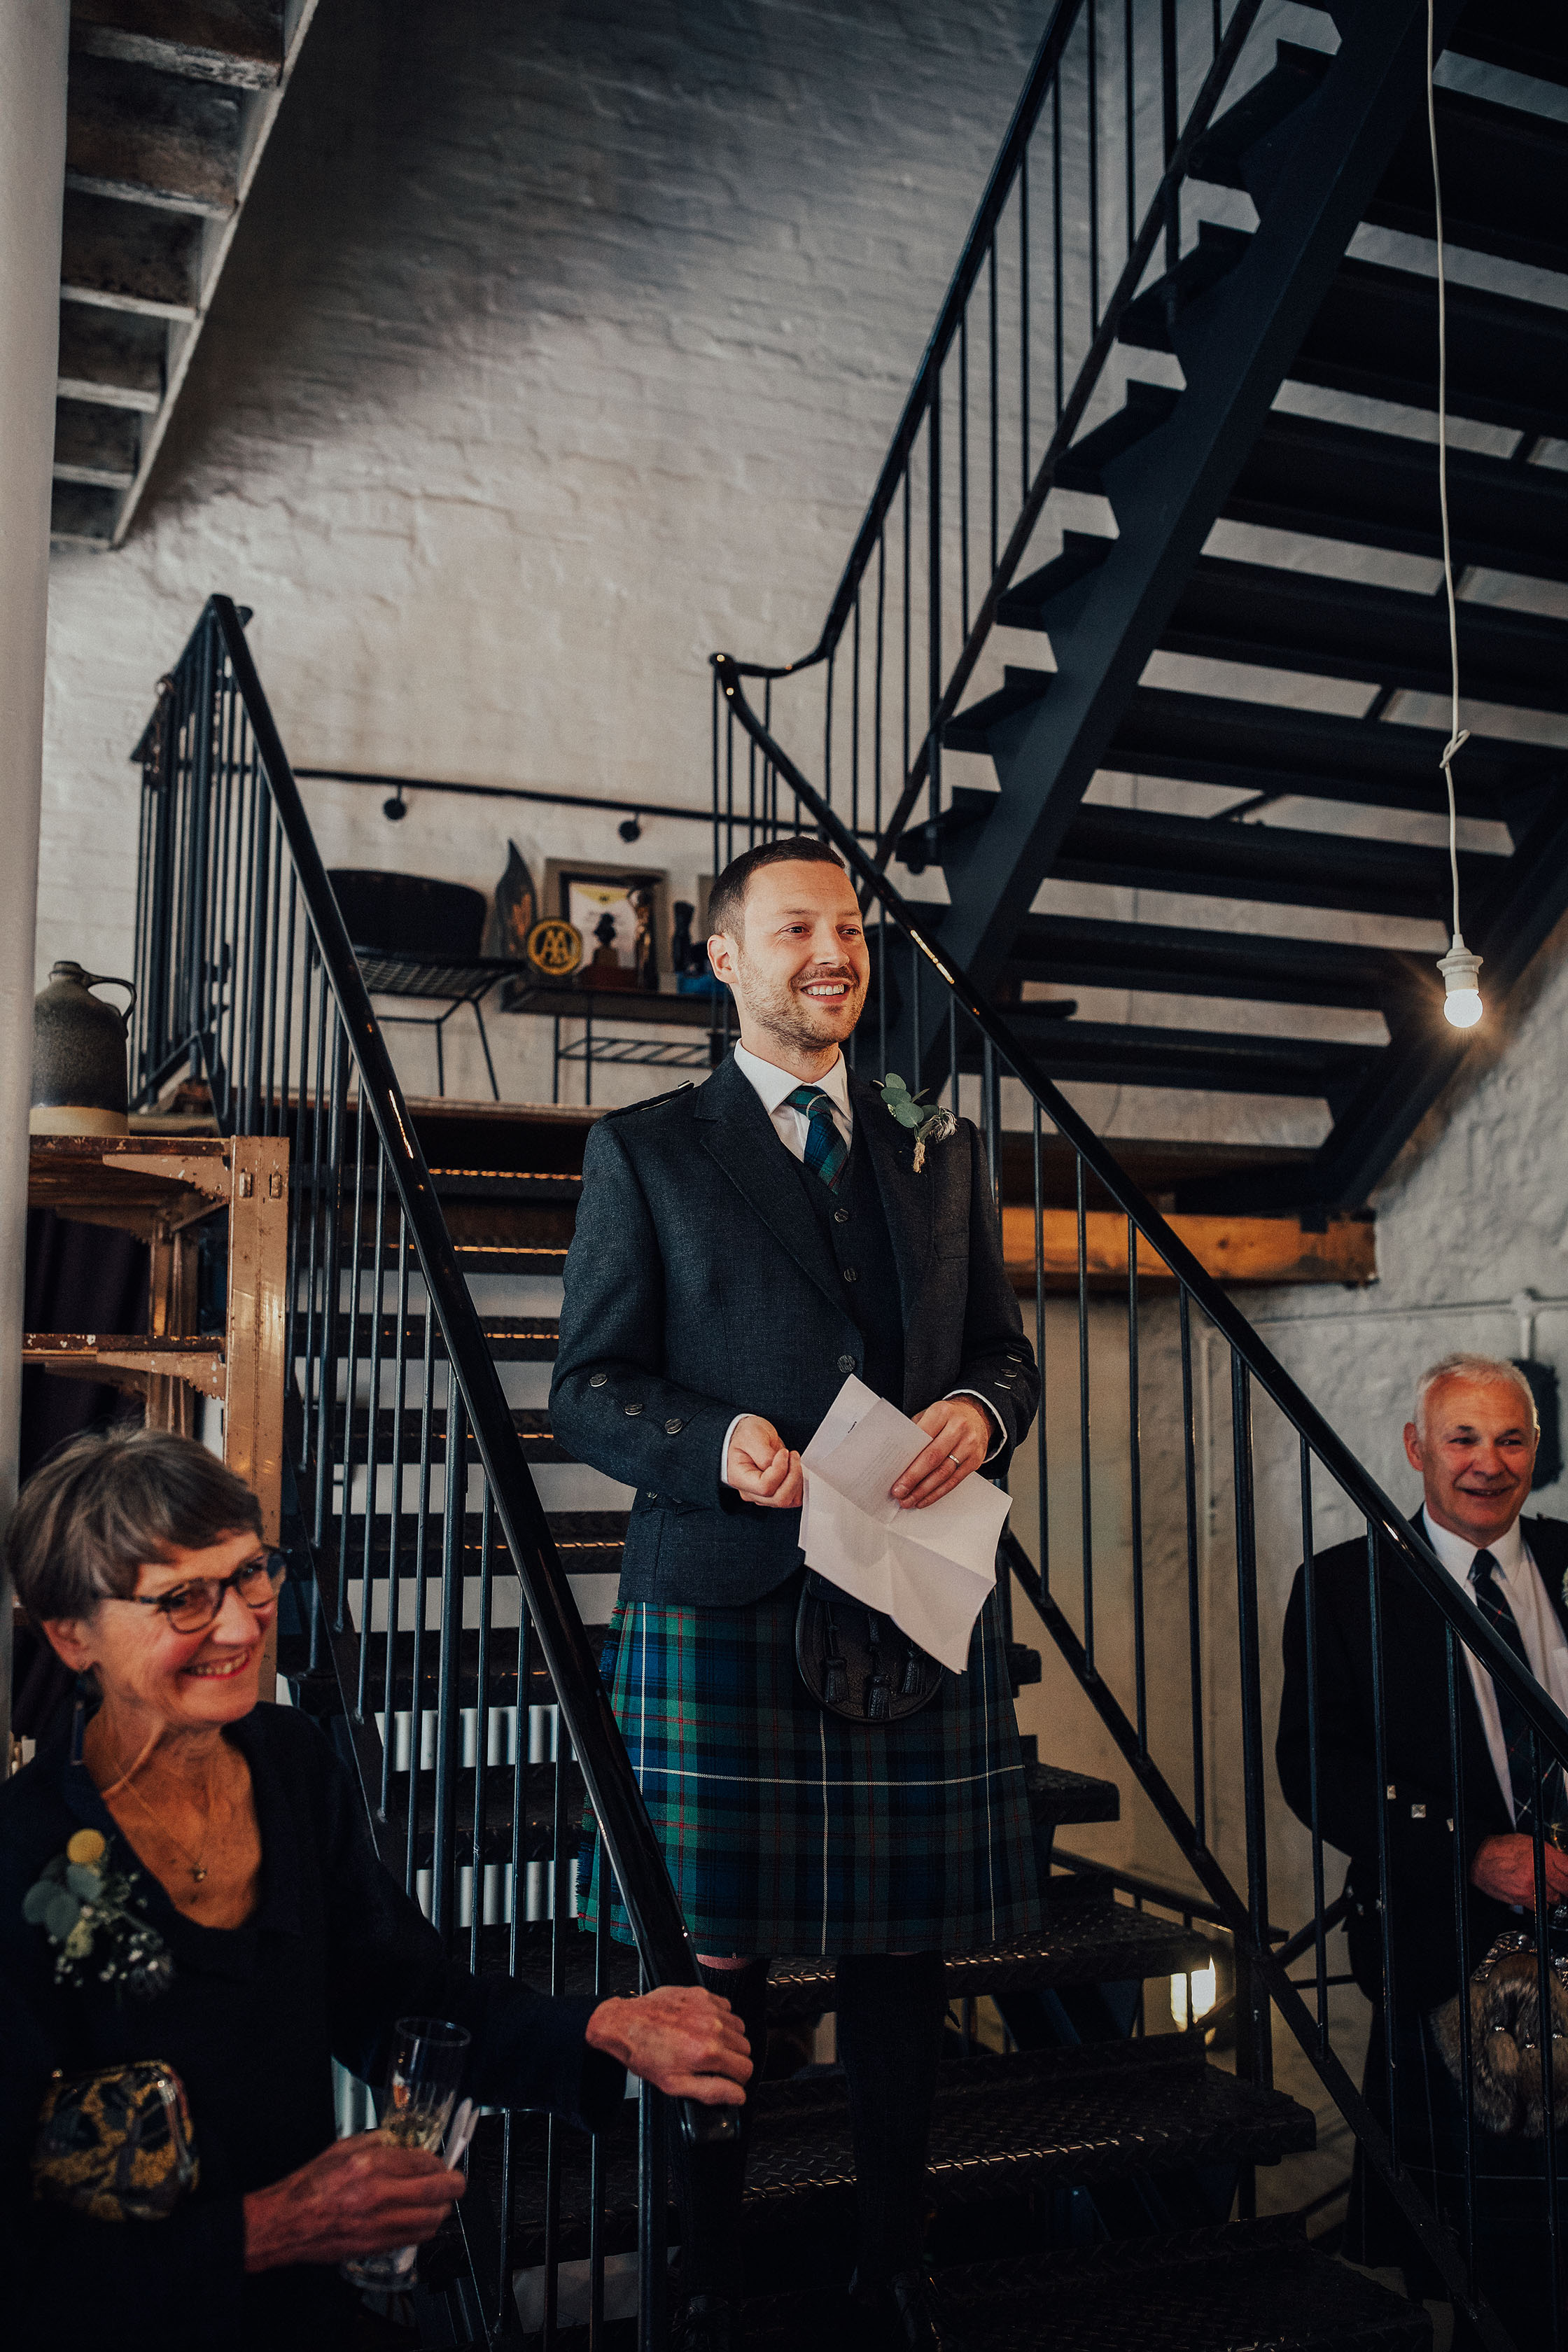 TIMBERYARD_EDINBURGH_WEDDING_PJ_PHILLIPS_PHOTOGRAPHY_149.jpg